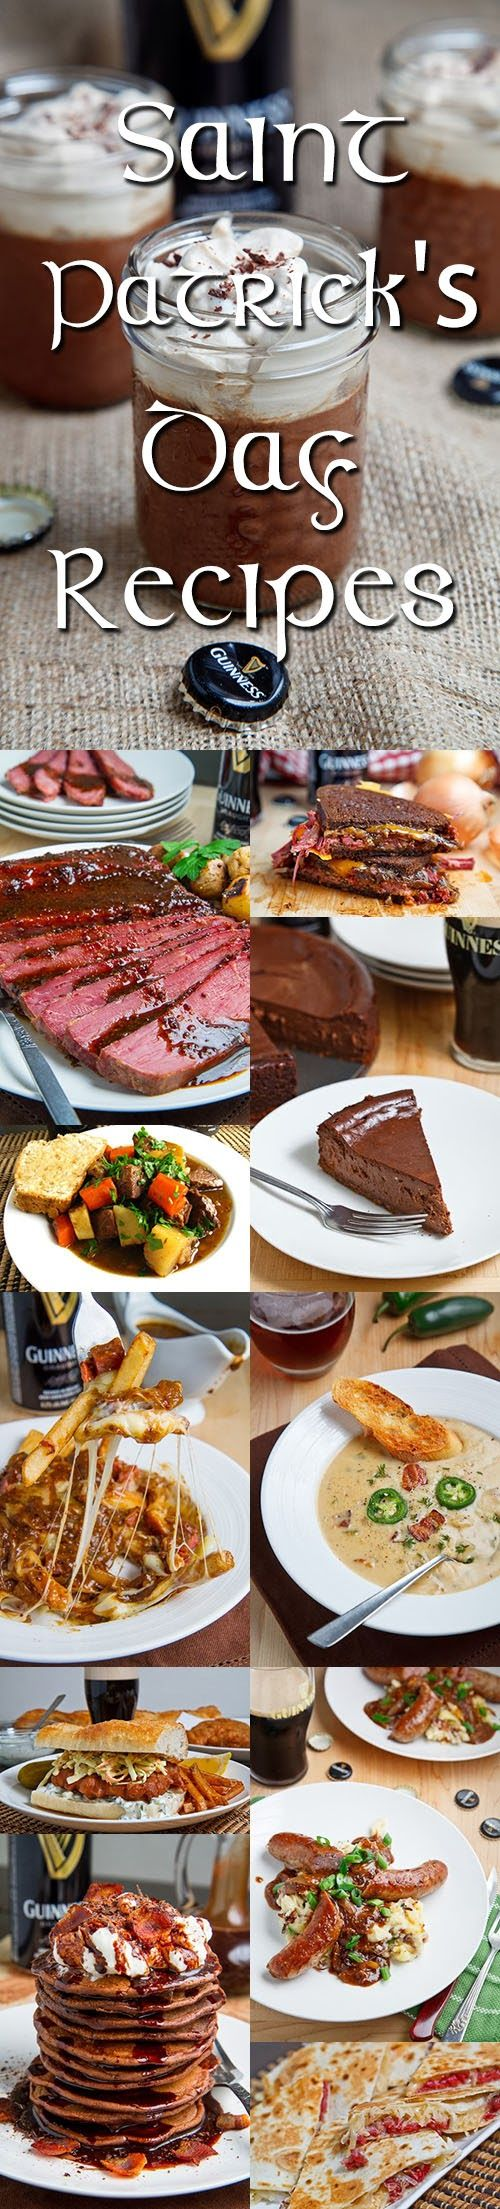 St Patrick's Day Recipes {Closet Cooking}... the slow cooker corned beef sure looks good, as does the rest!